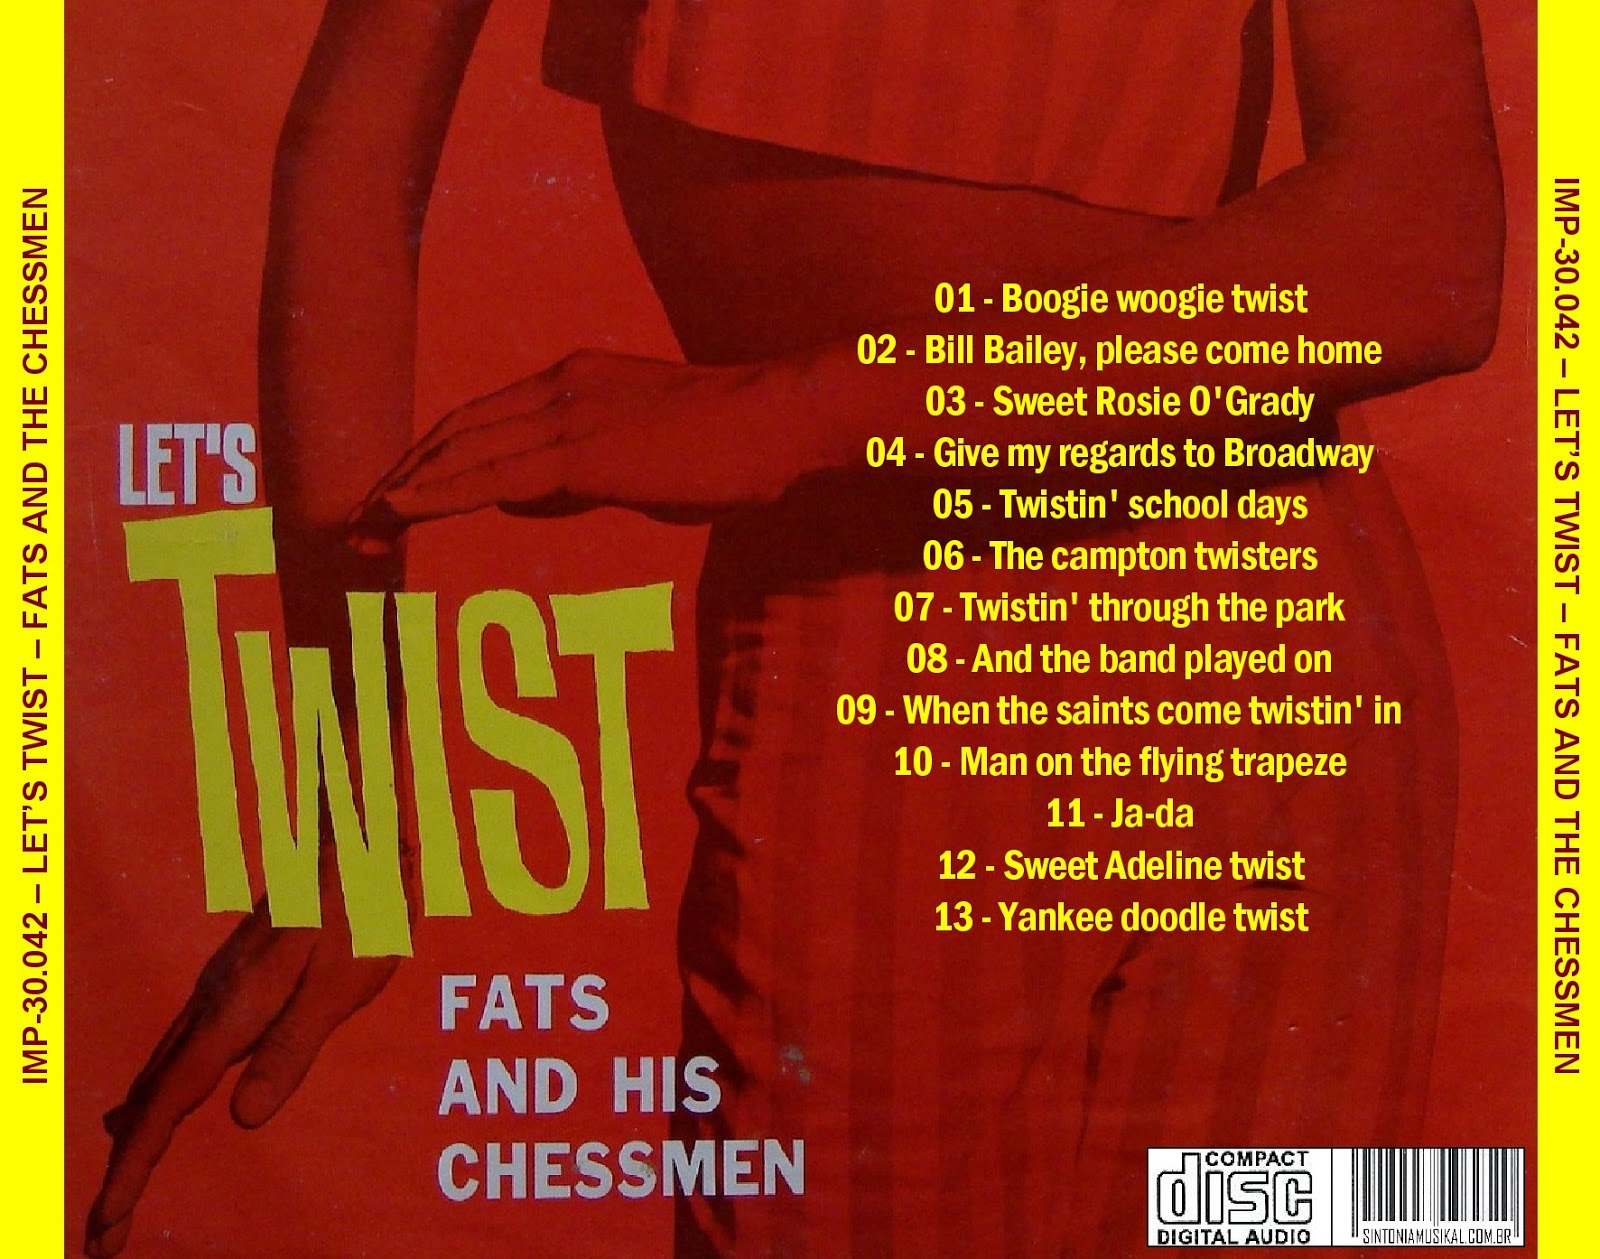 Fats And The Chessmen Dansons Le Twist